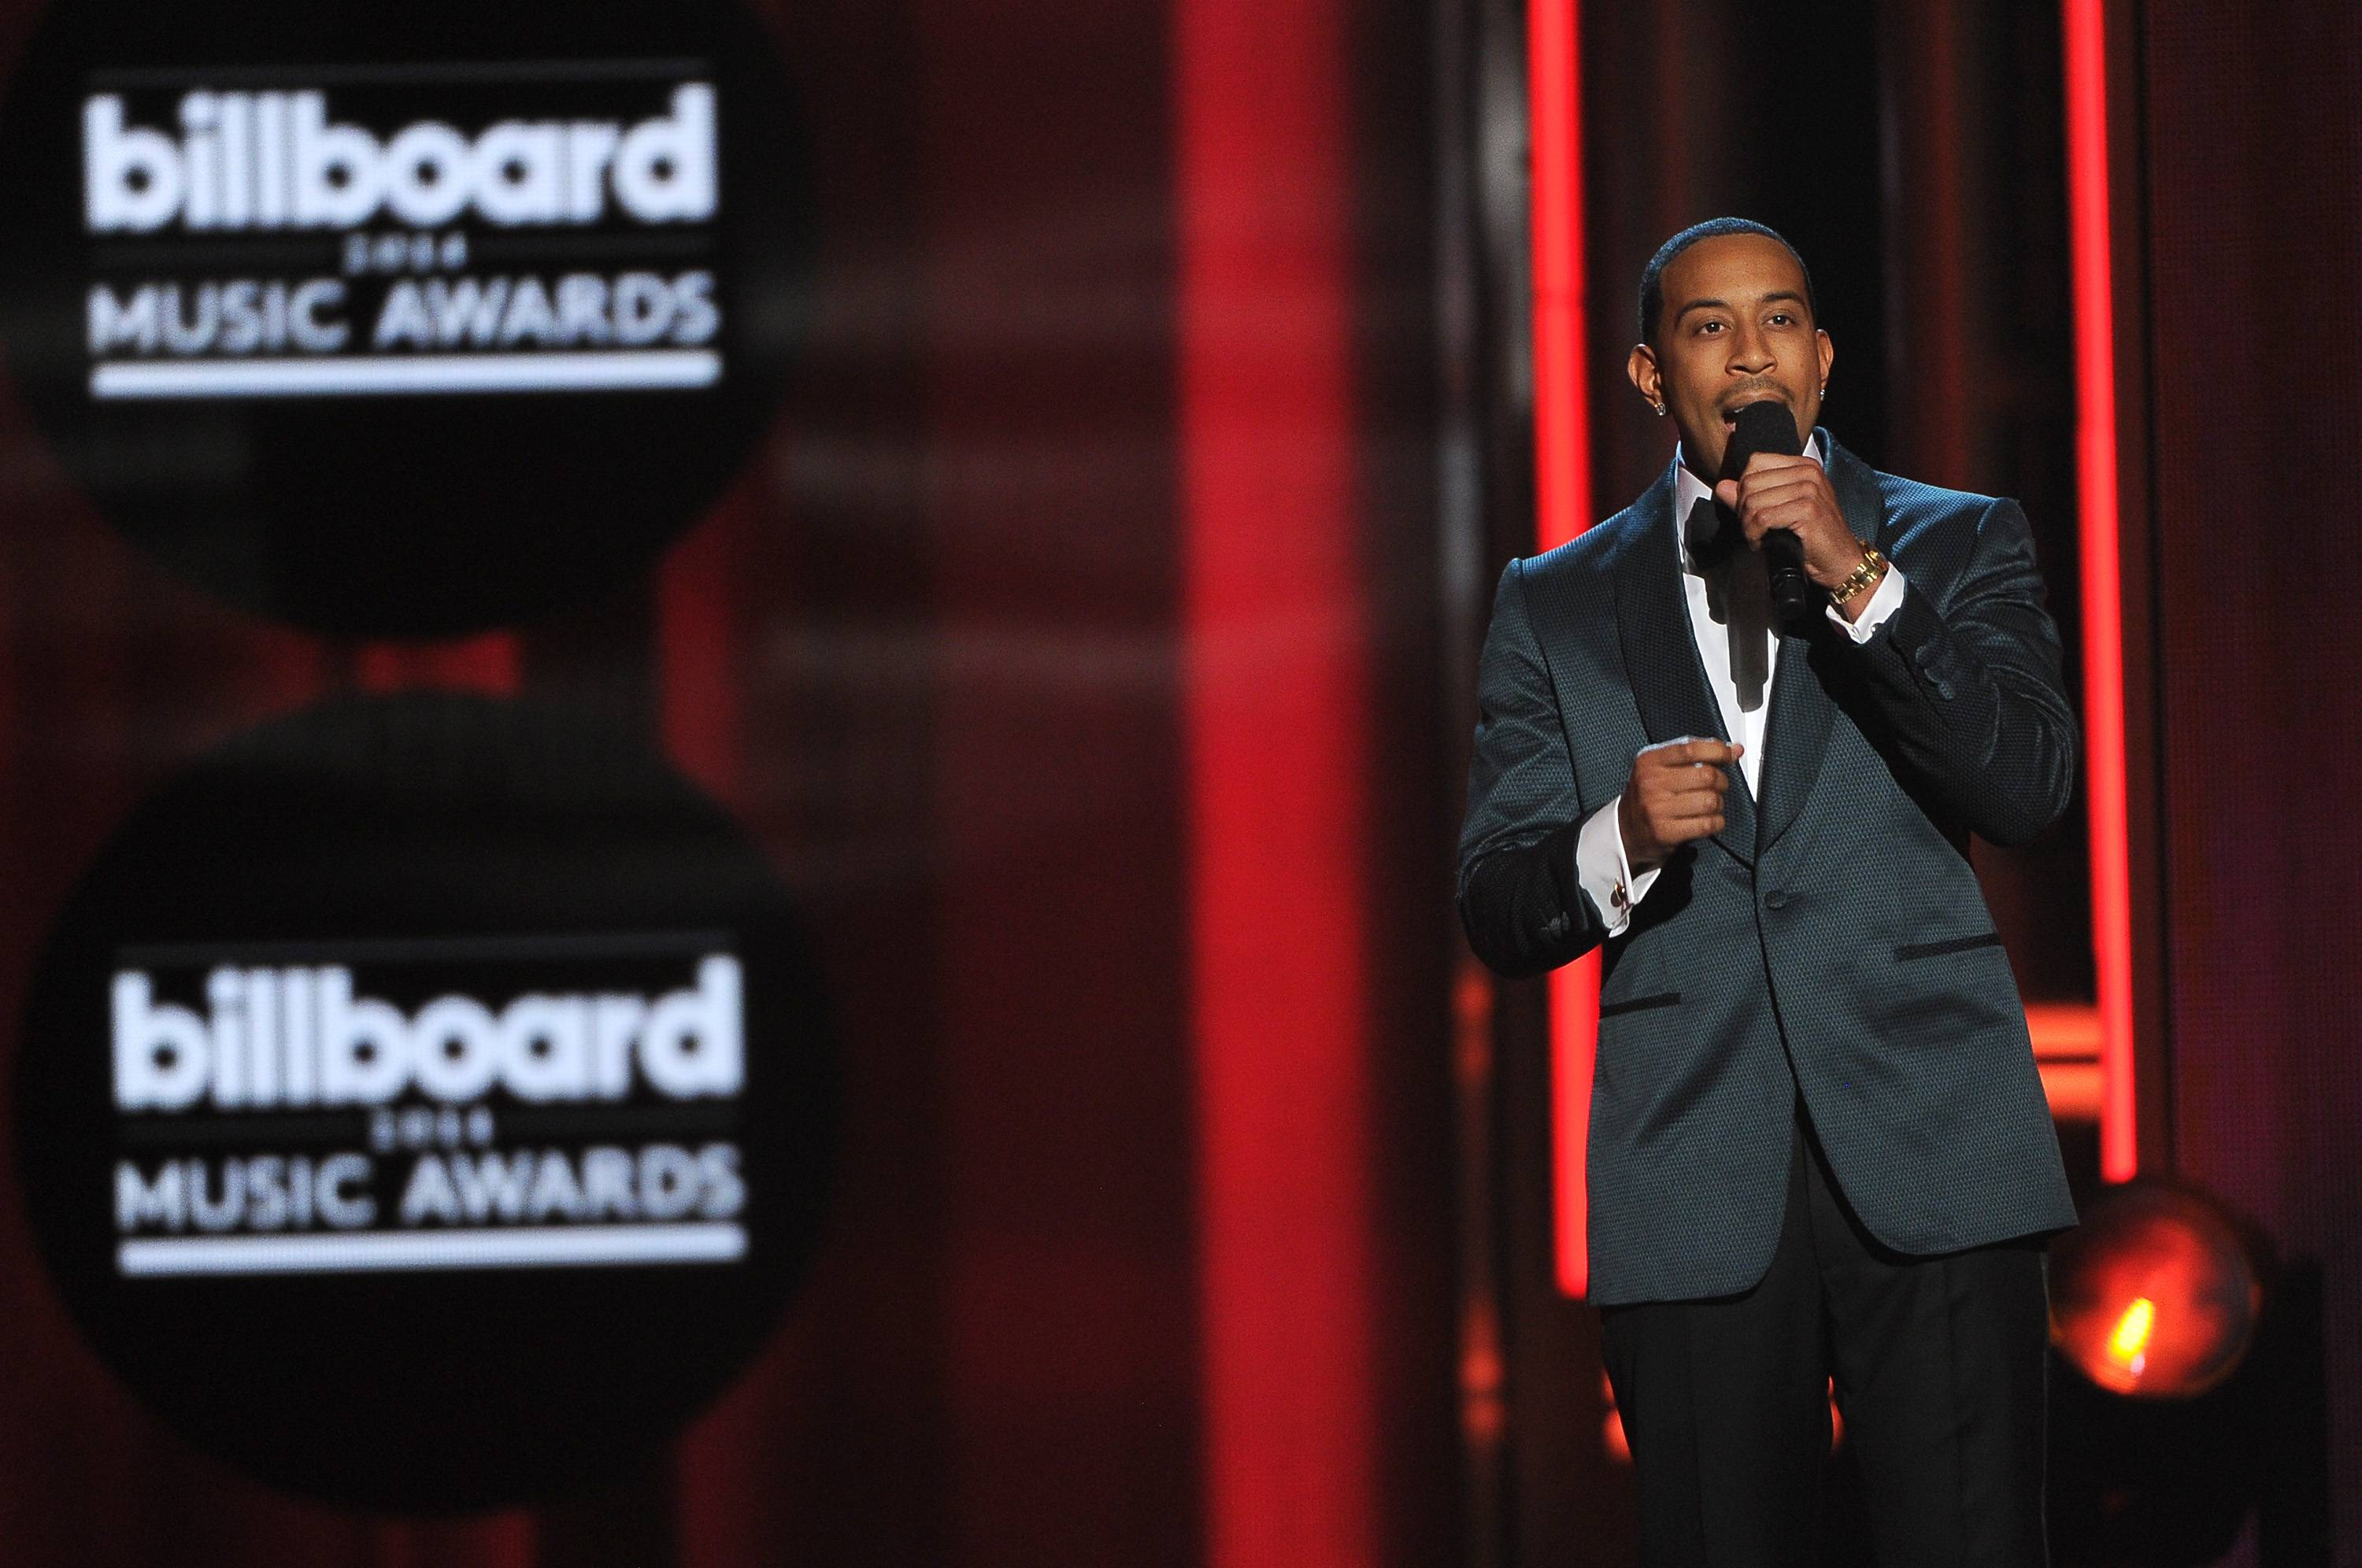 Ludacris, host of the Billboard Music Awards, speaks on stage at the MGM Grand Garden Arena on Sunday, May 18, 2014, in Las Vegas.